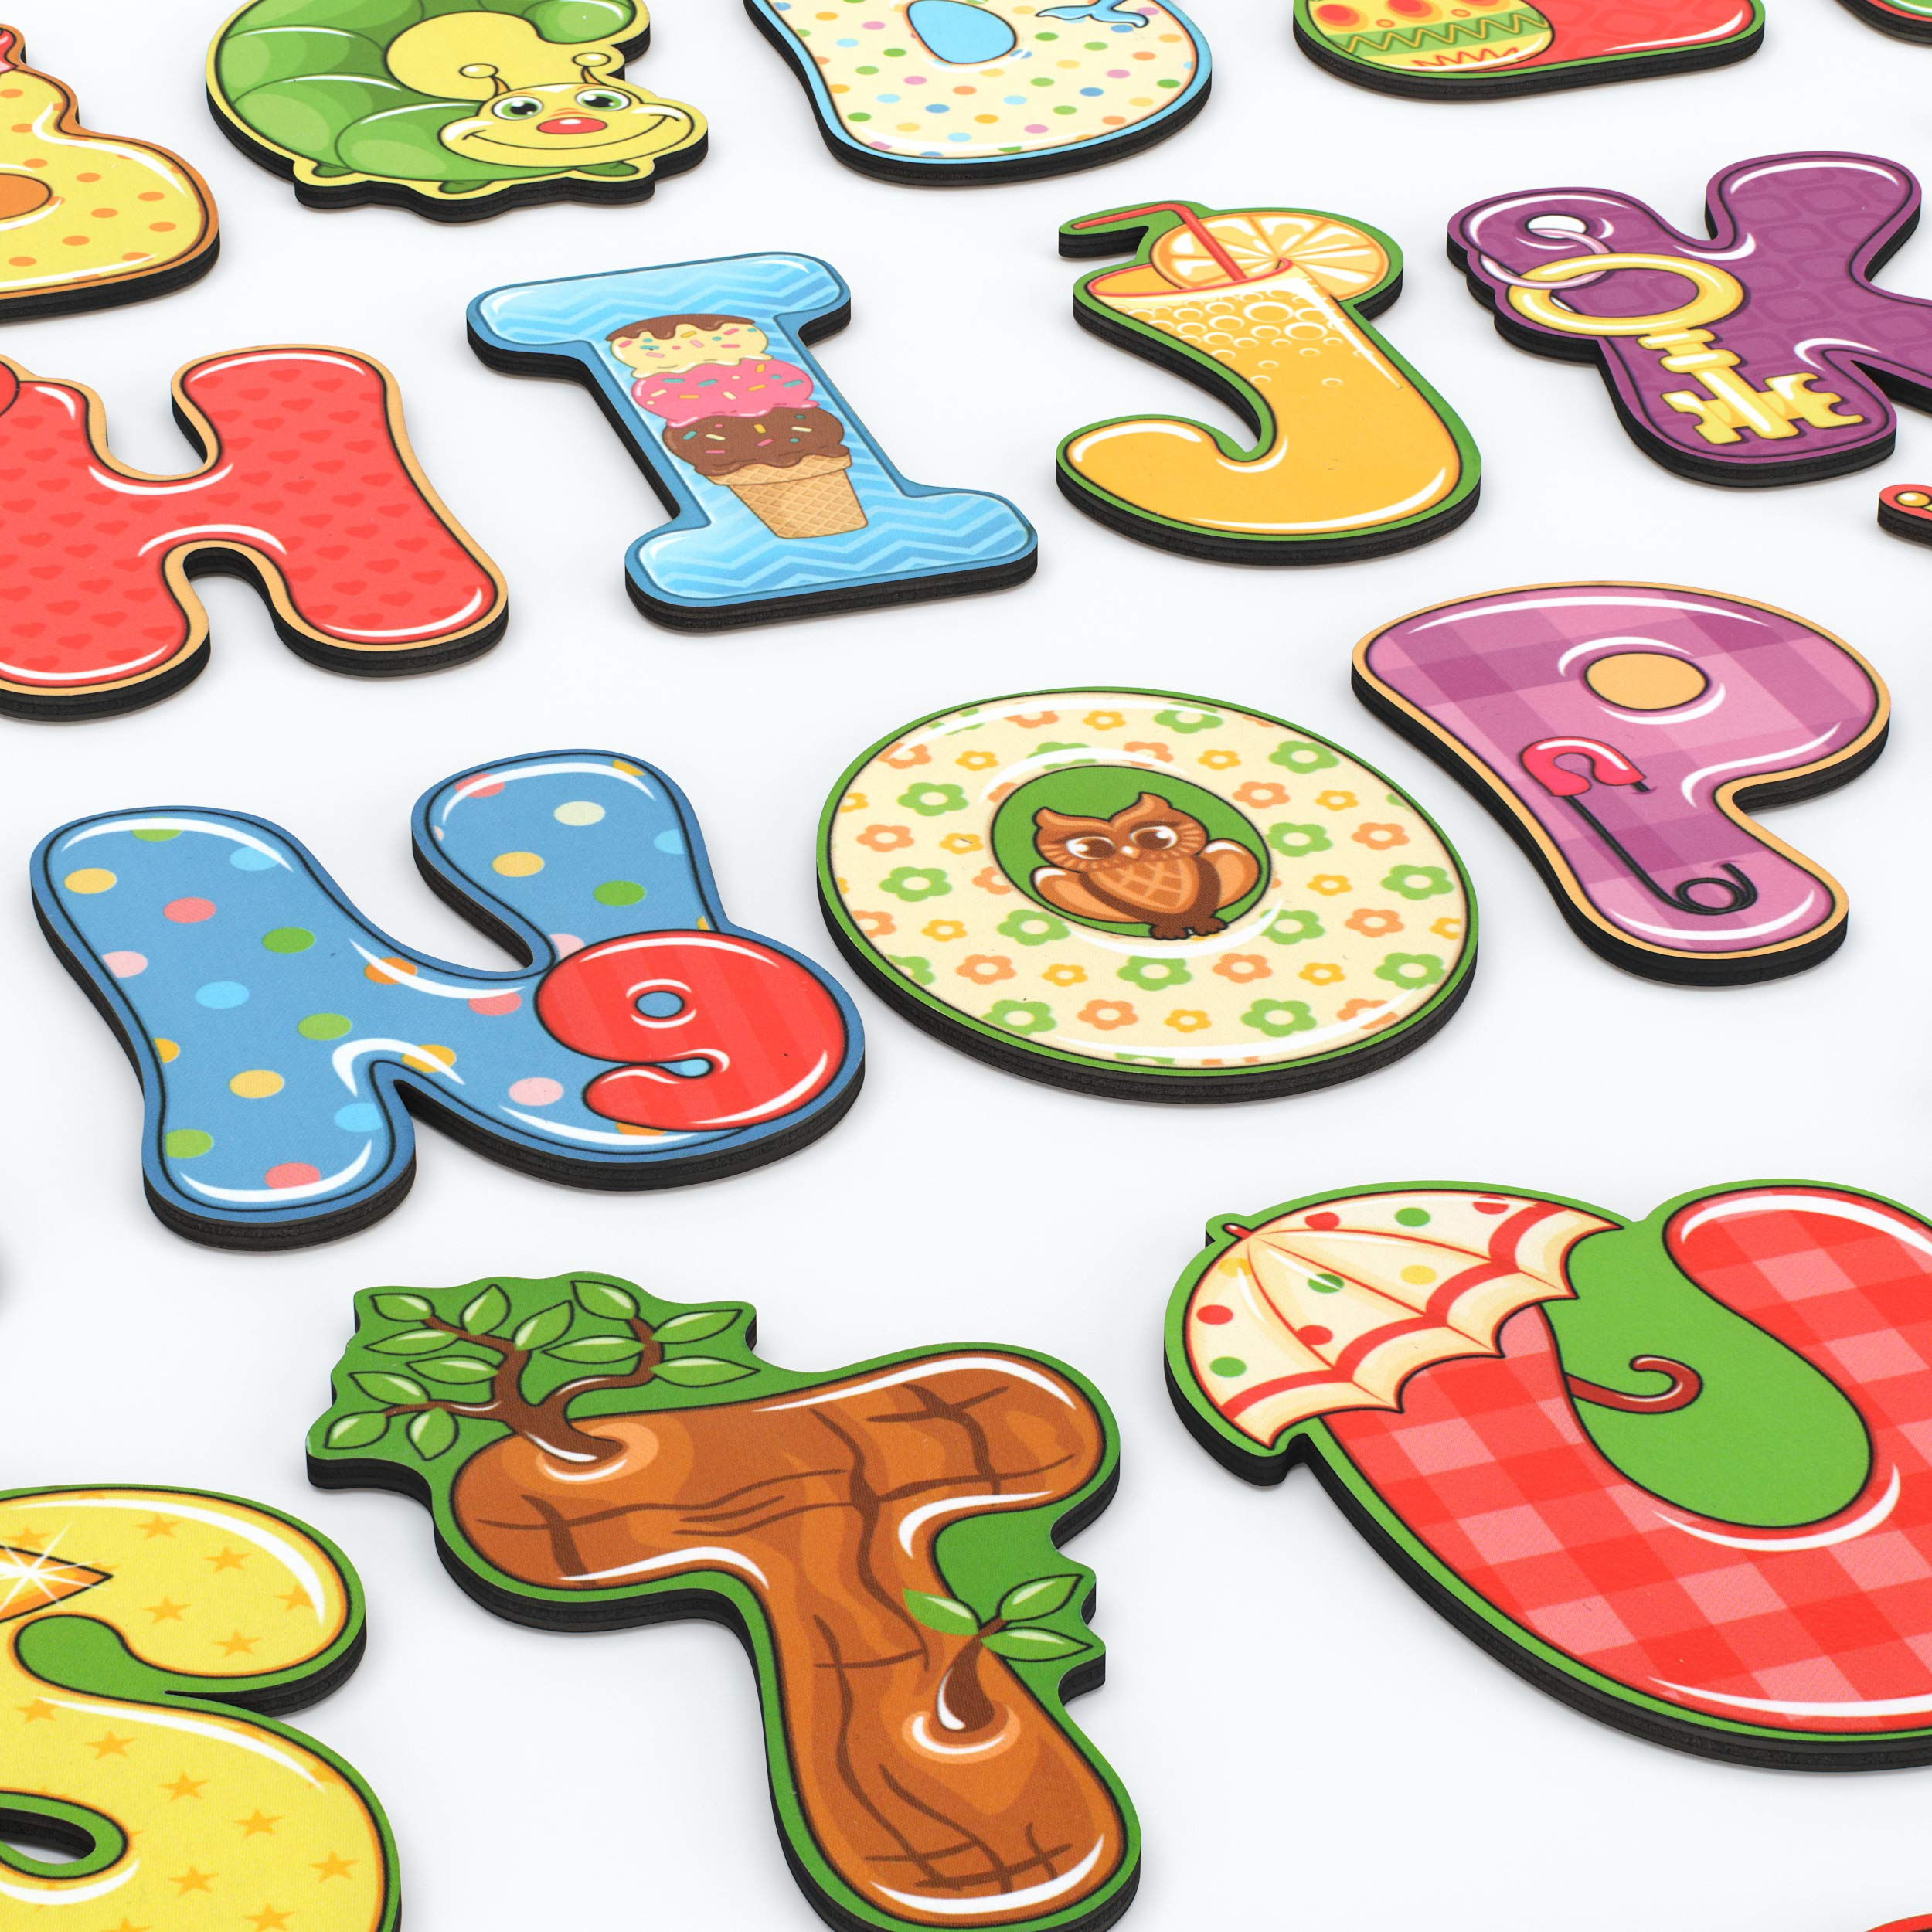 BeeZee Kid Happy ABC Letters - Wood Alphabet with Attachable Magnetic Backs - Fridge ABC Magnets for Kids - 26 Large Wood Letters - Reading Learning Toy for Toddlers and Preschoolers